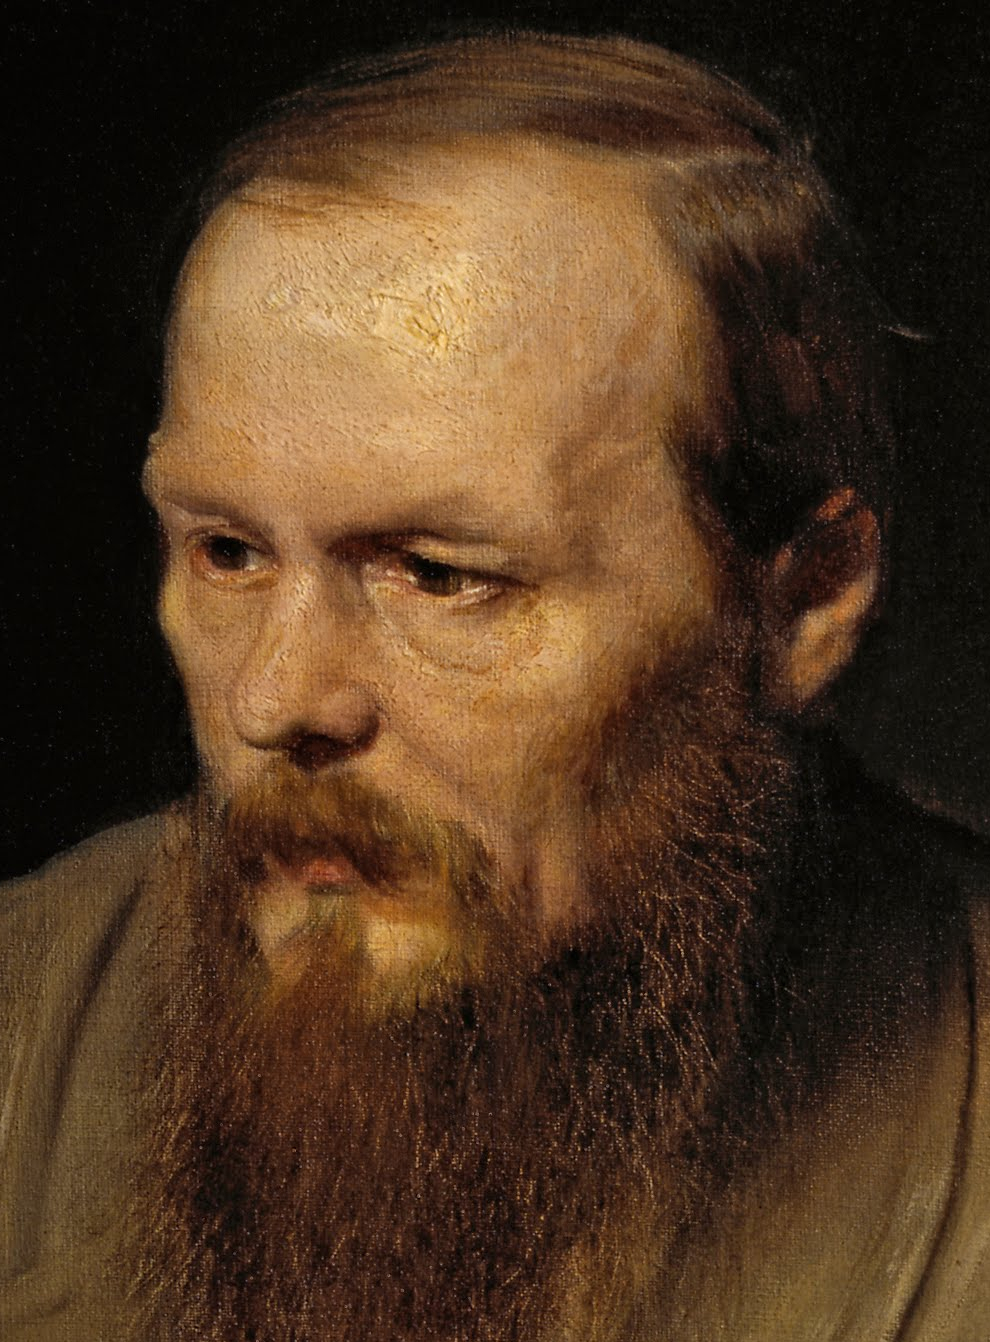 Dostoevsky 140-190 for collage.jpg